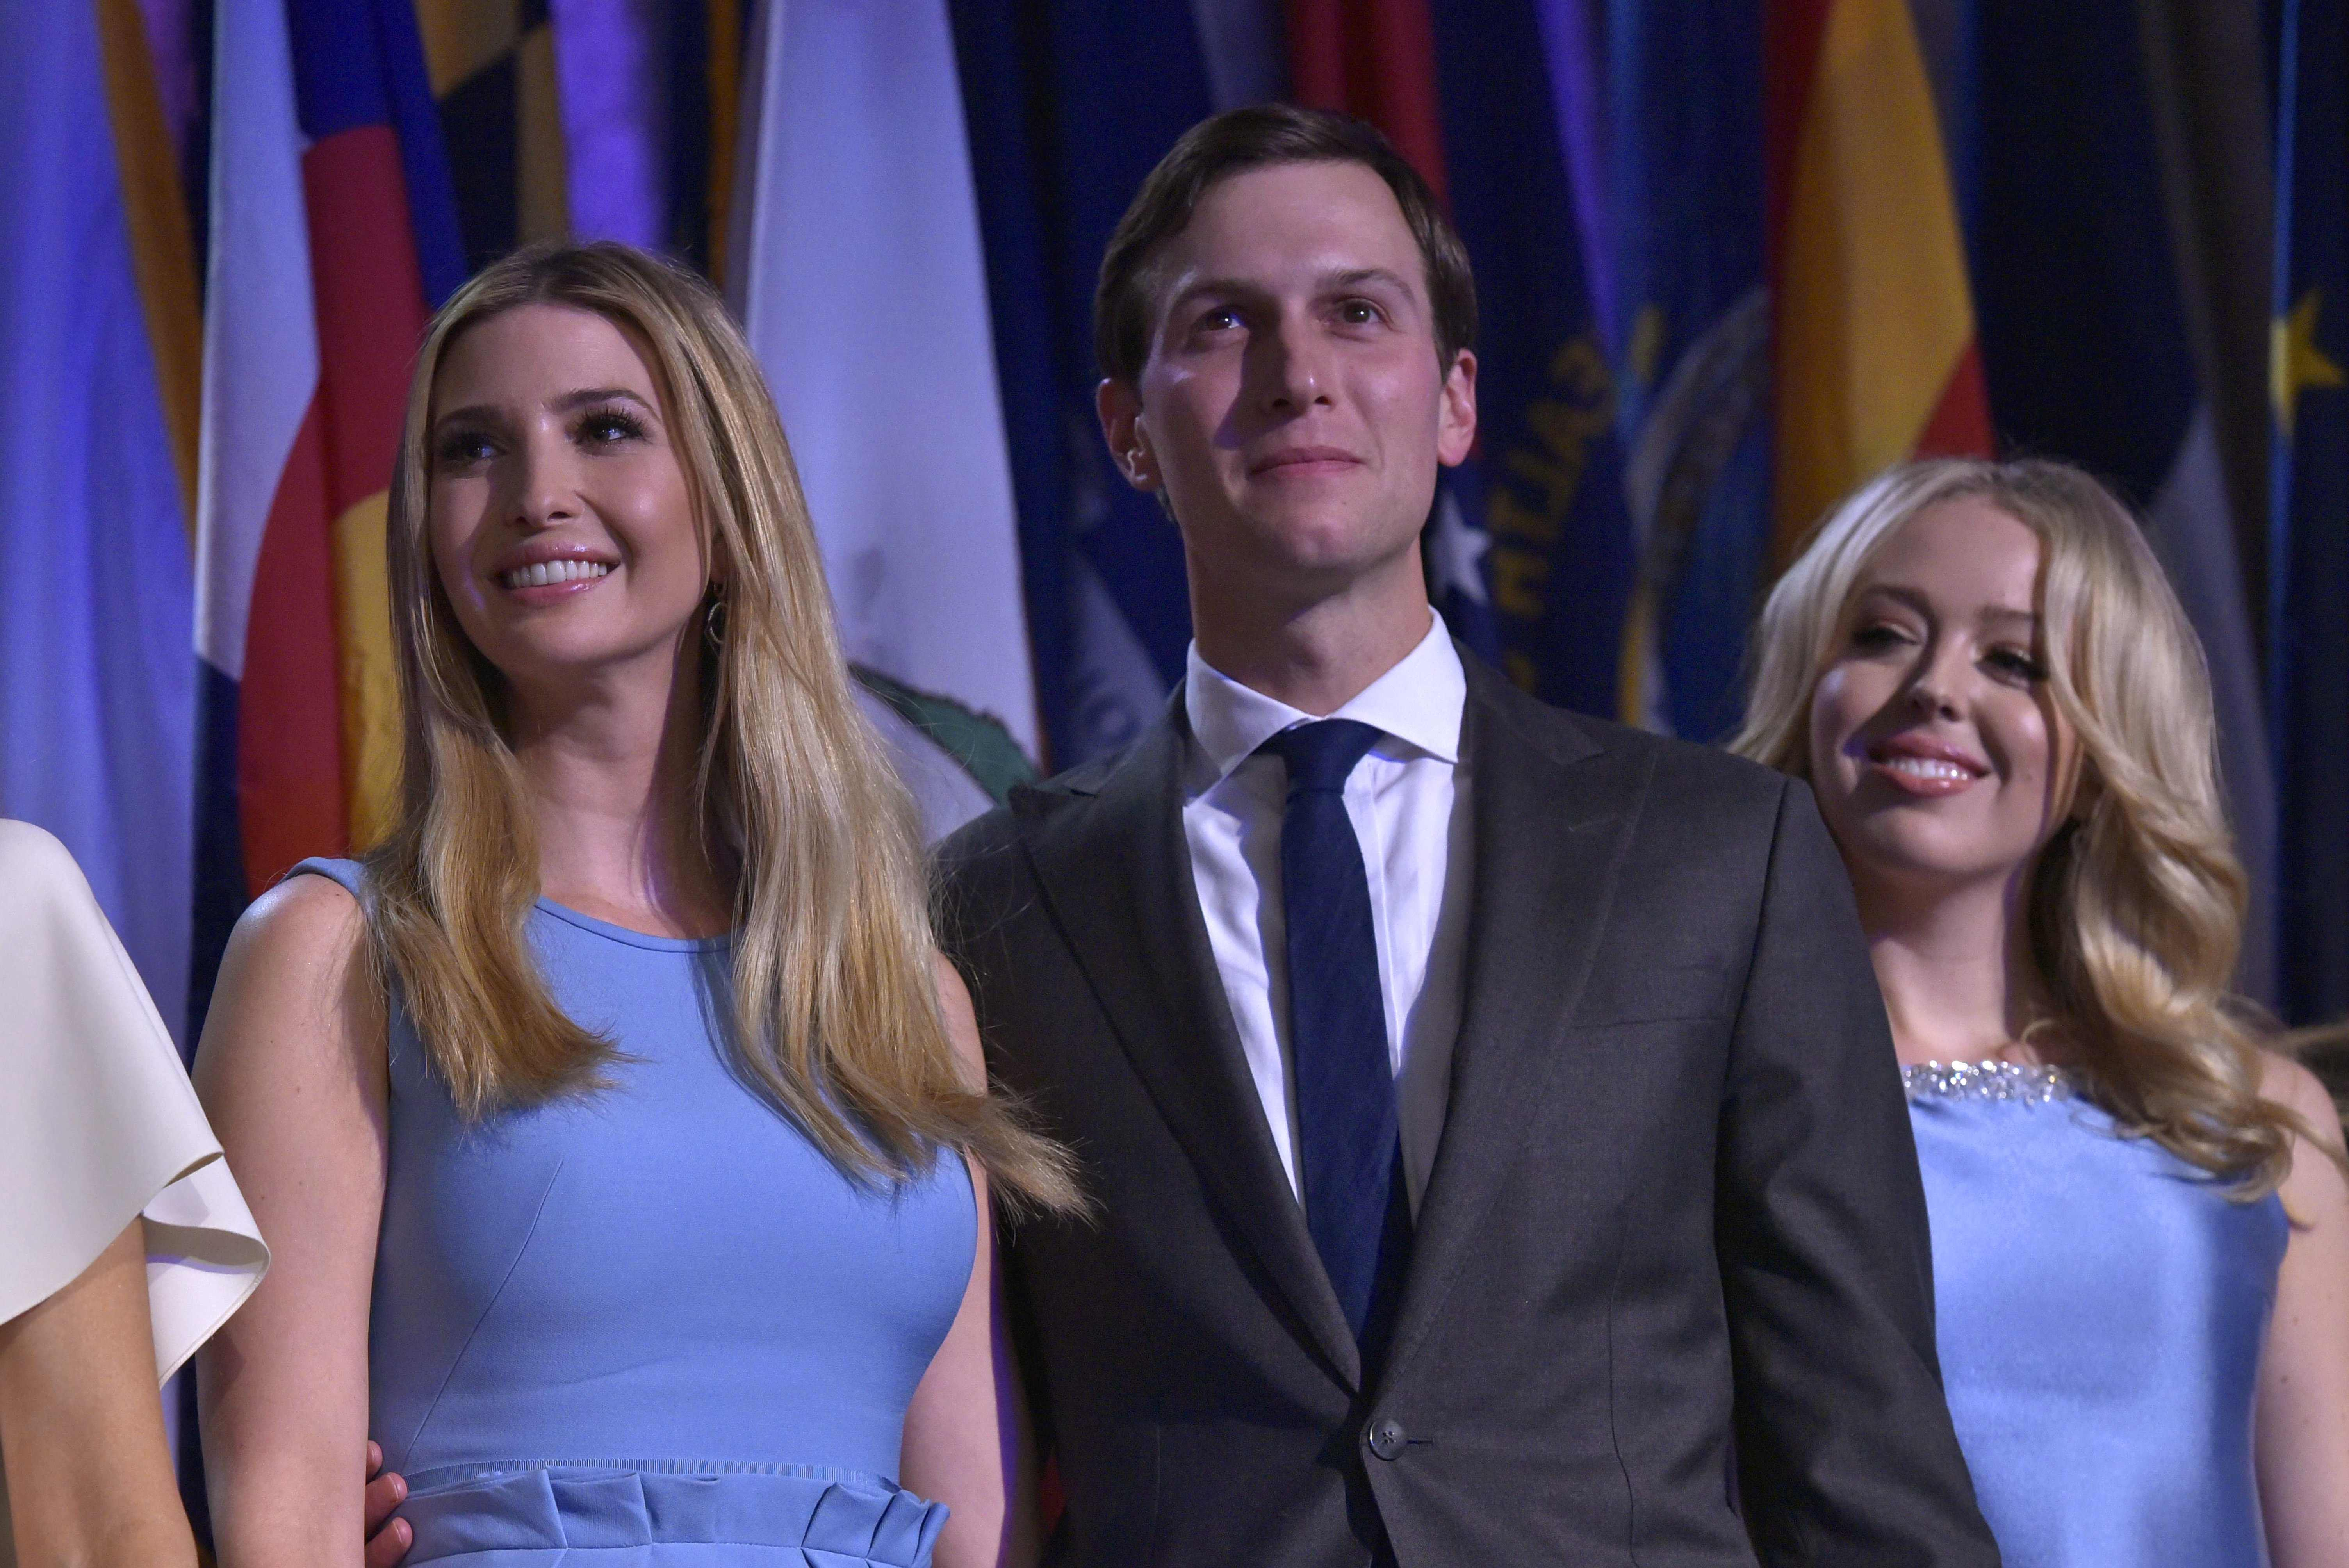 She is married to multi-millionaire property tycoon Jared Kushner